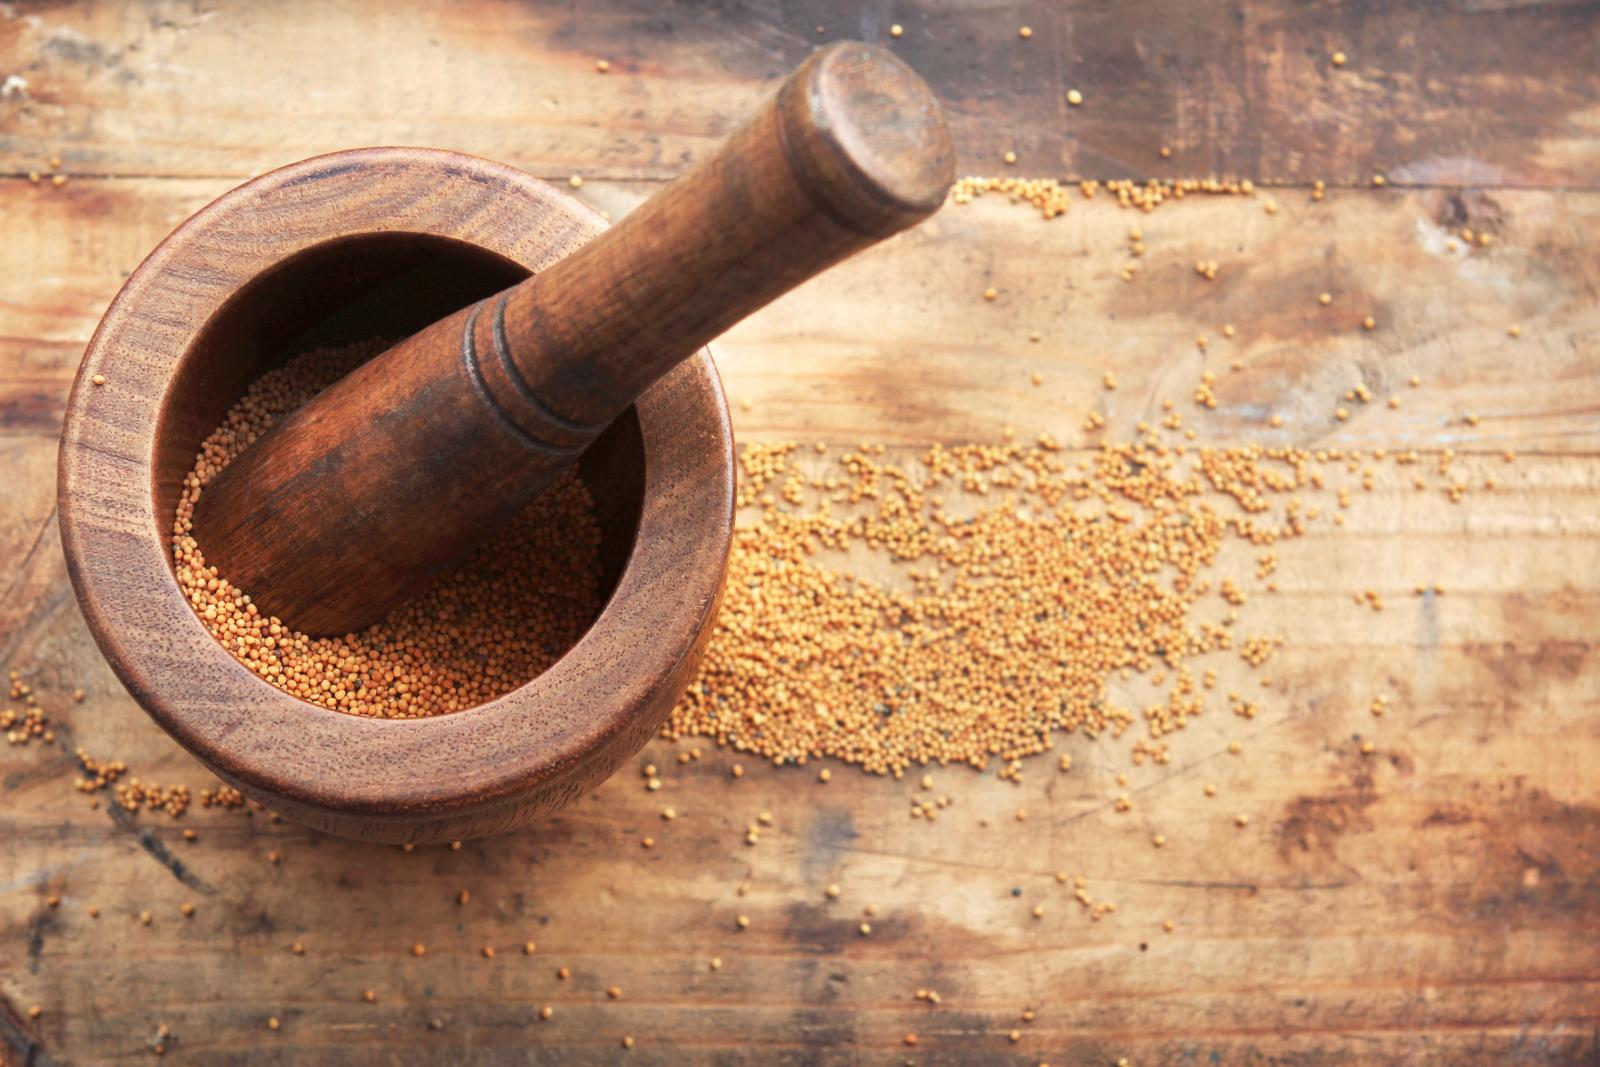 Mortar and pestle with mustard seeds